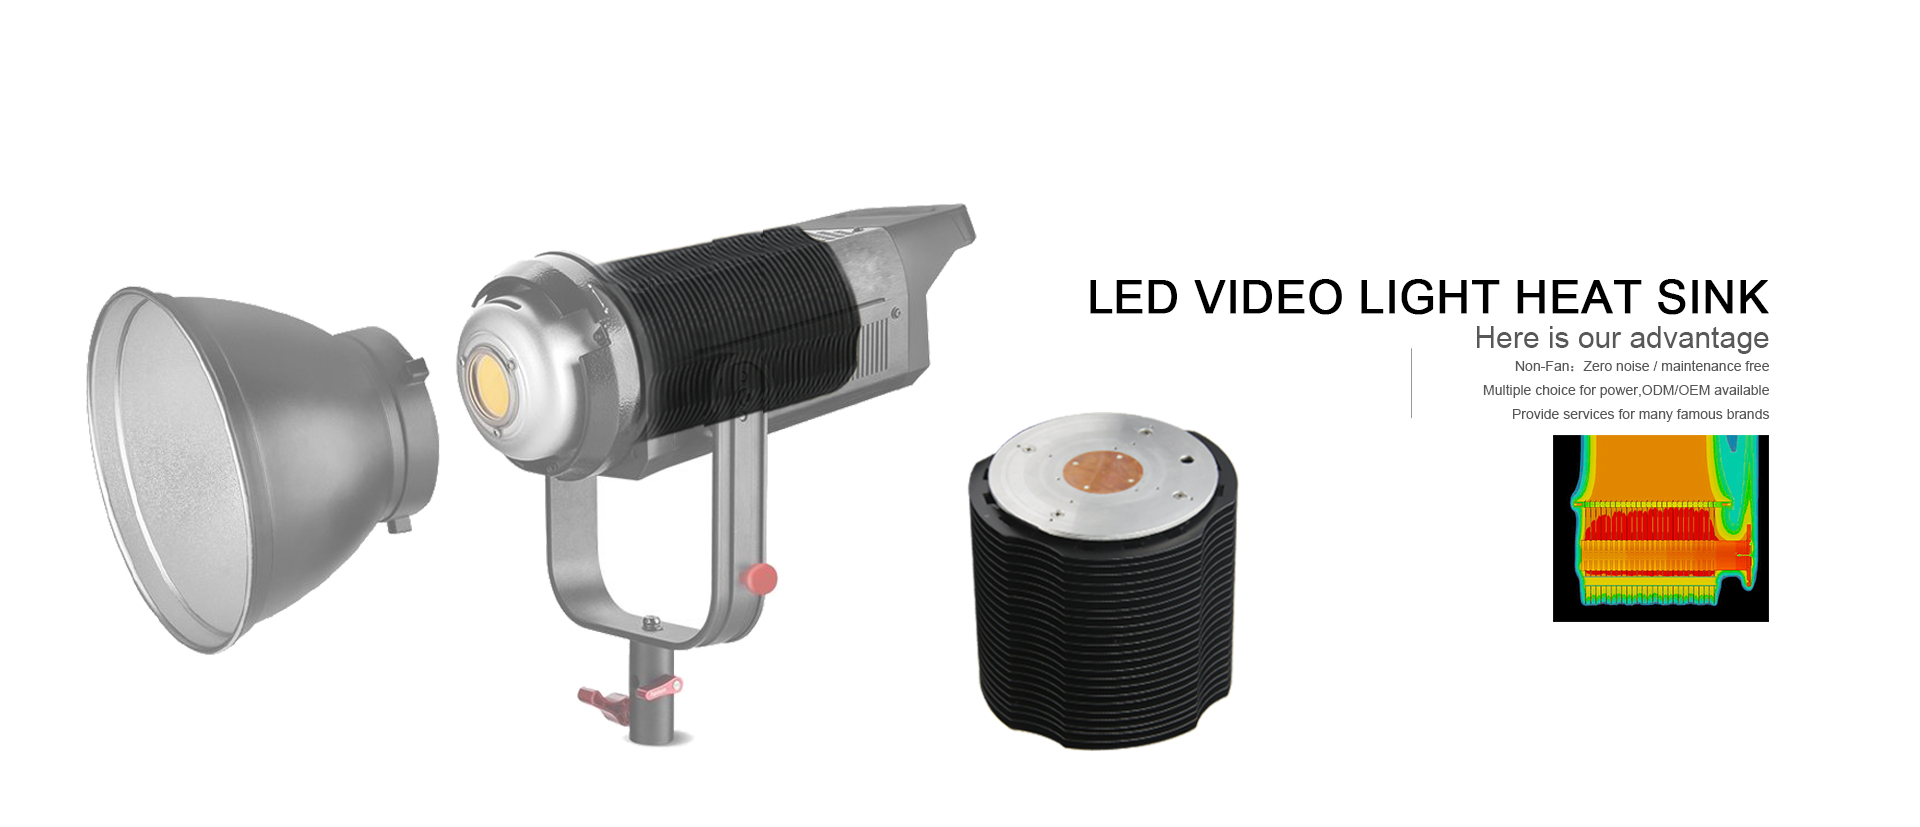 LED video light heat sink